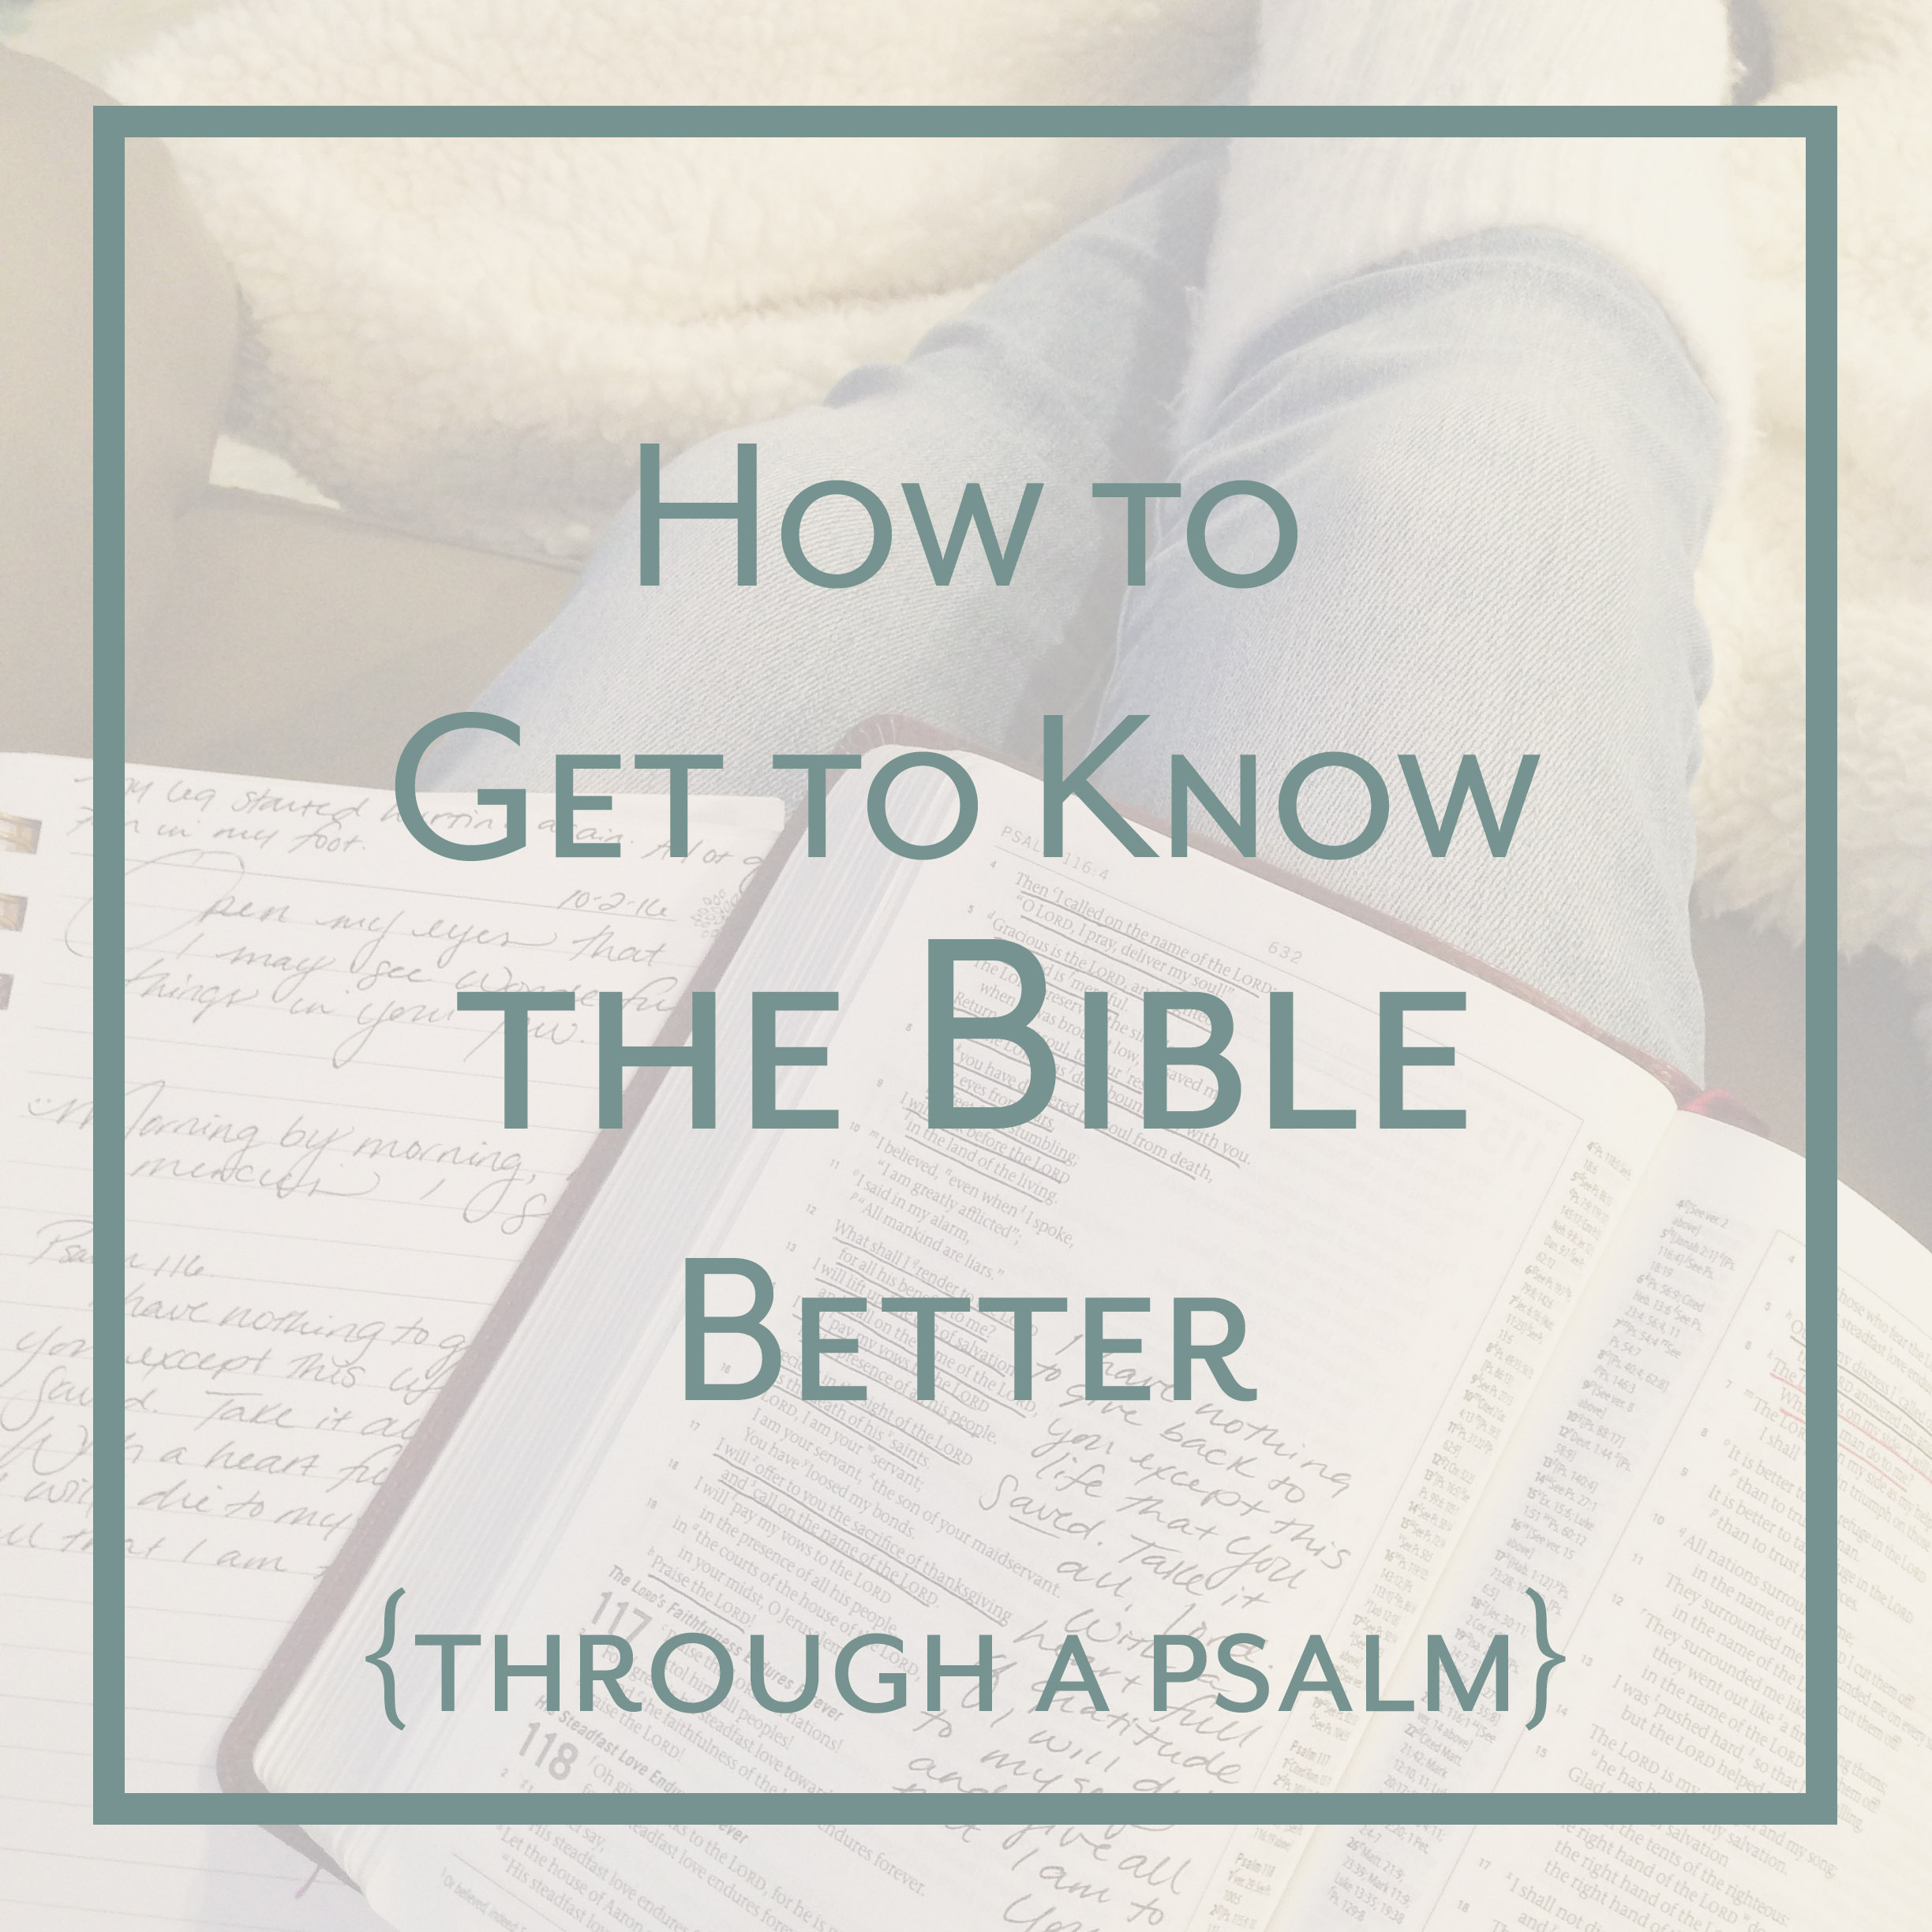 How to Get to Know the Bible Better_Choose Joy Bible Study for Women_Psalms